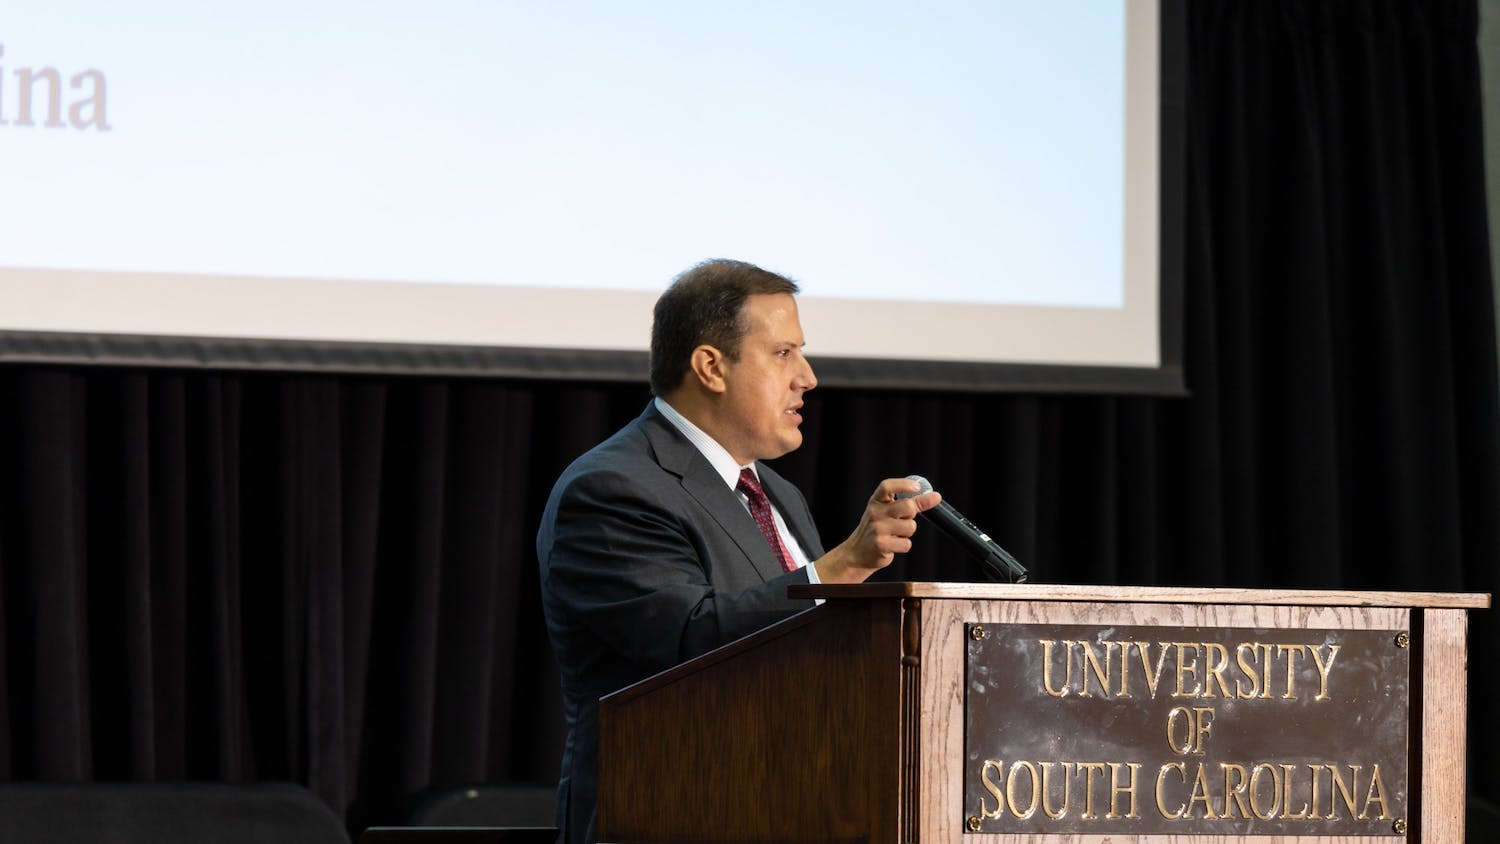 Thad Westbrook, chairman of the University of South Carolina Presidential Search Committee, speaks at a town hall Thursday. The committee hosted the town hall so members of the public could have their voices heard.